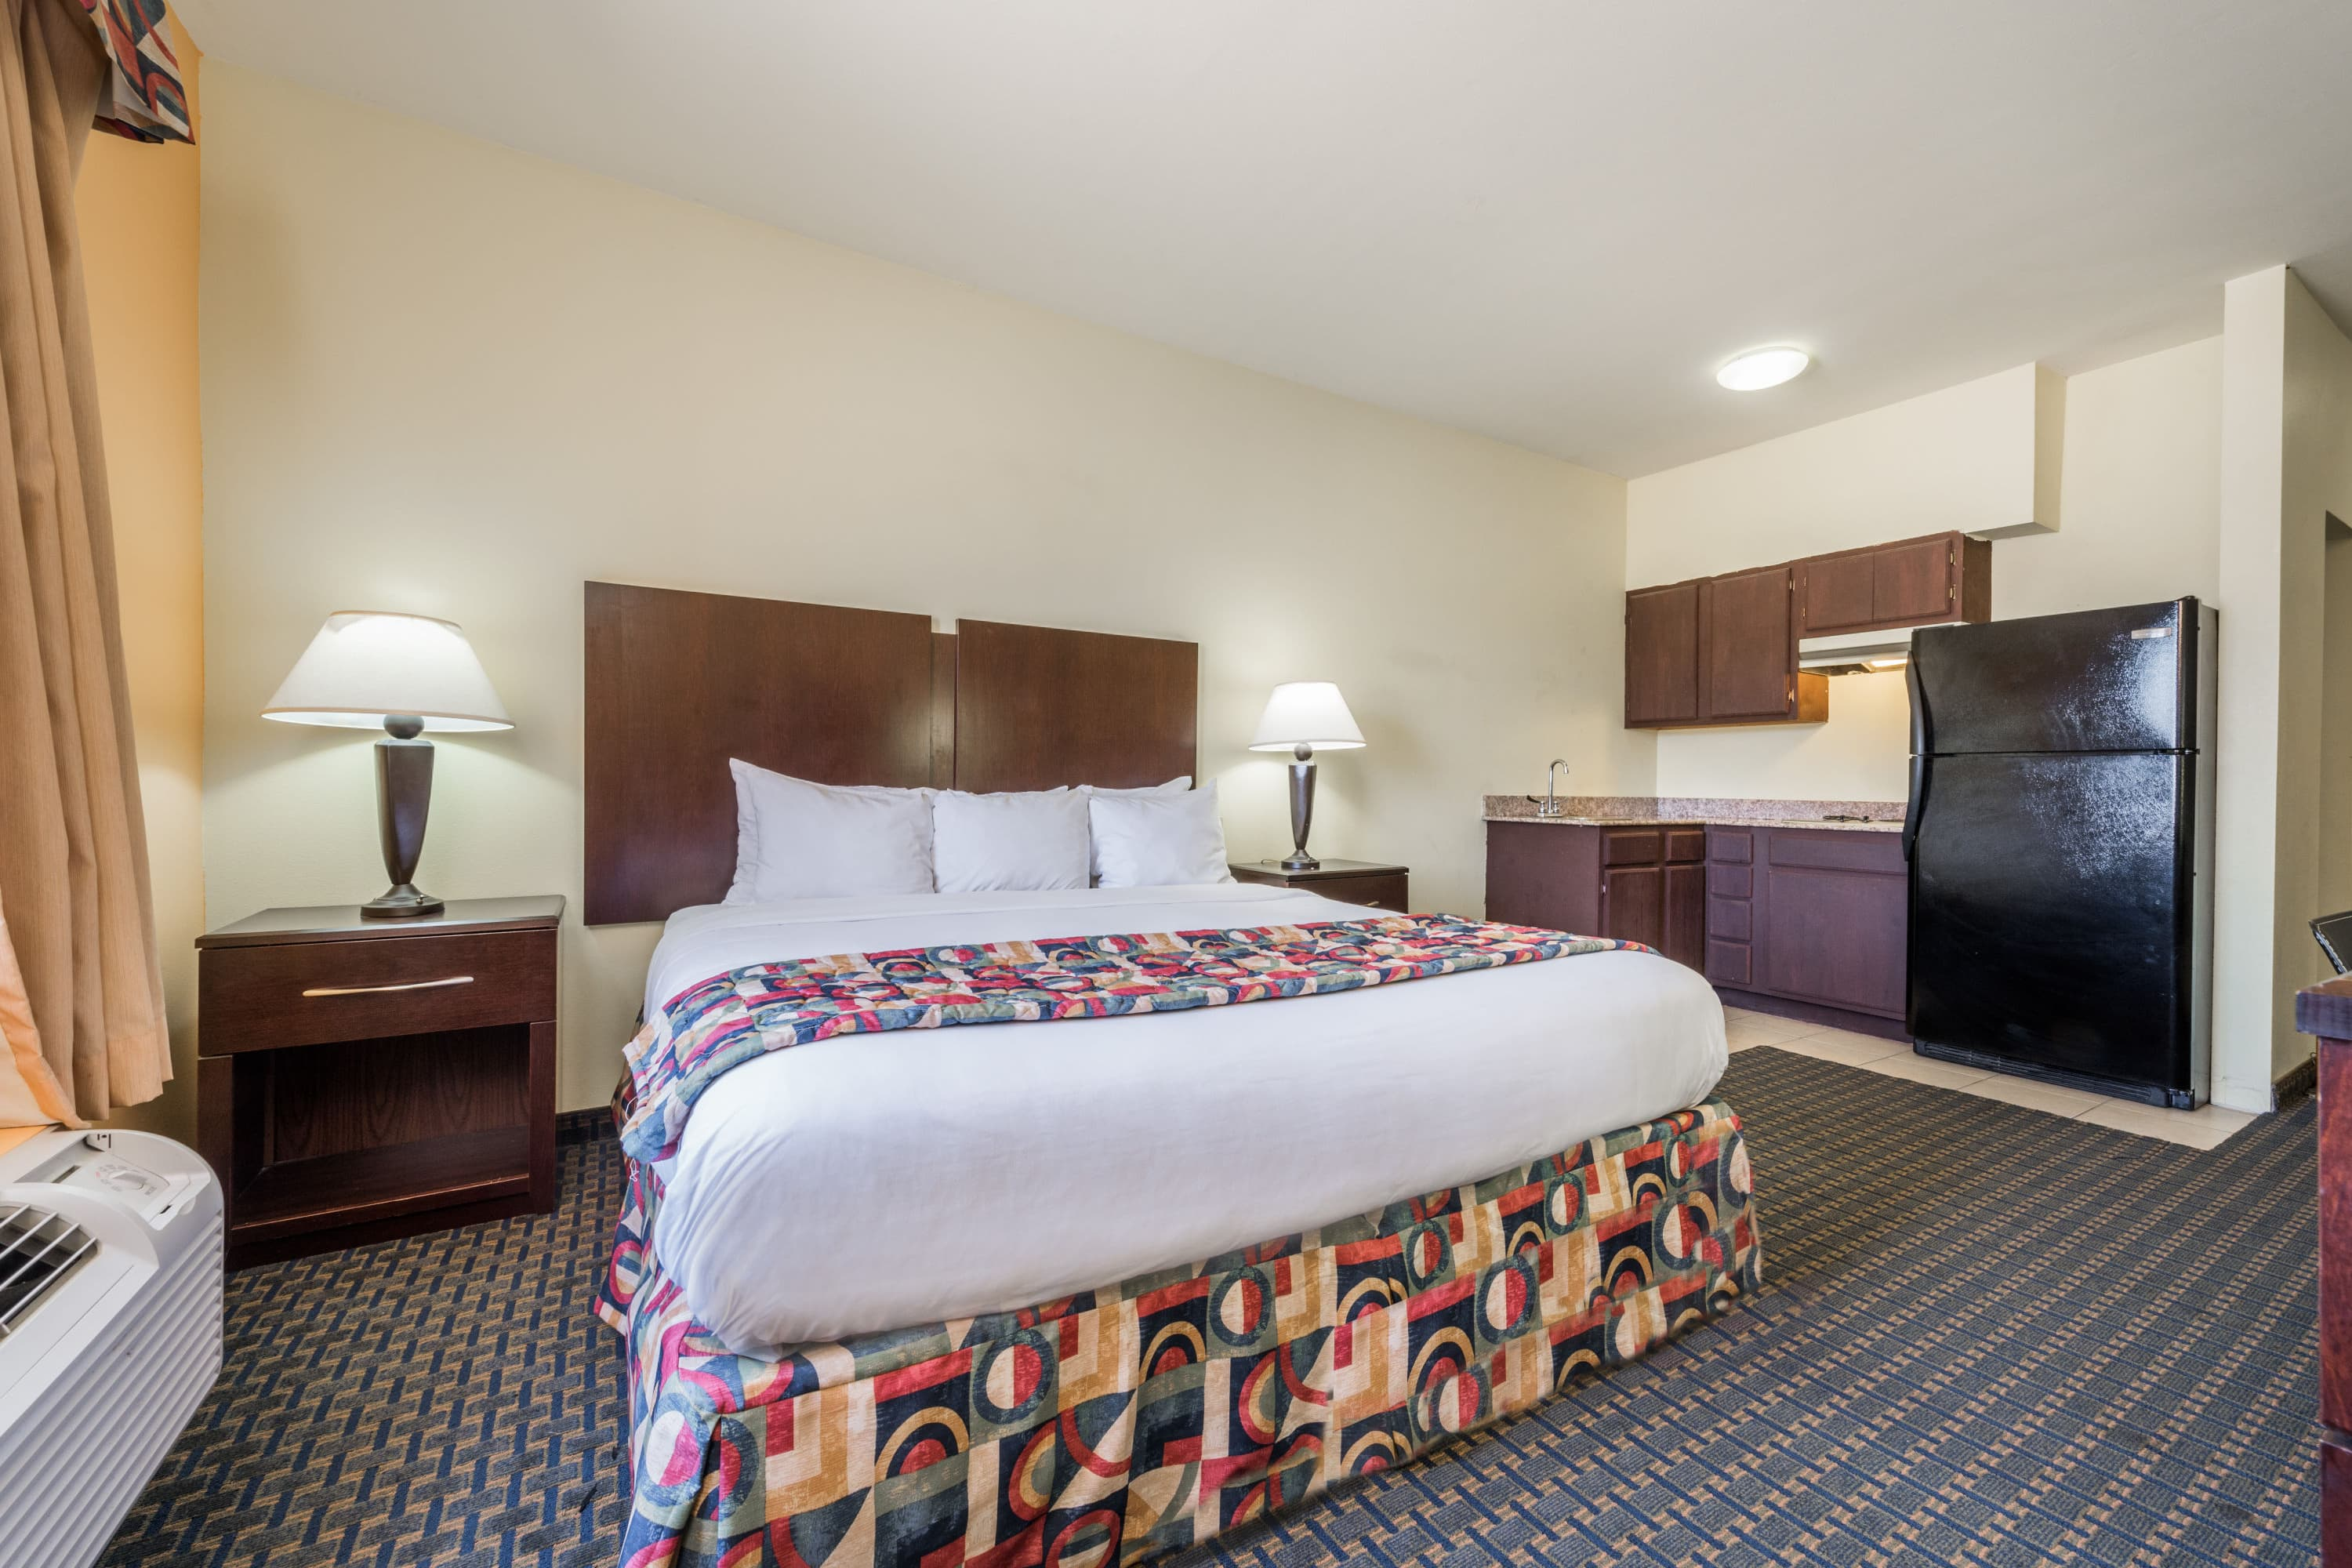 Days Inn & Suites Cleburne TX suite in Cleburne, Texas